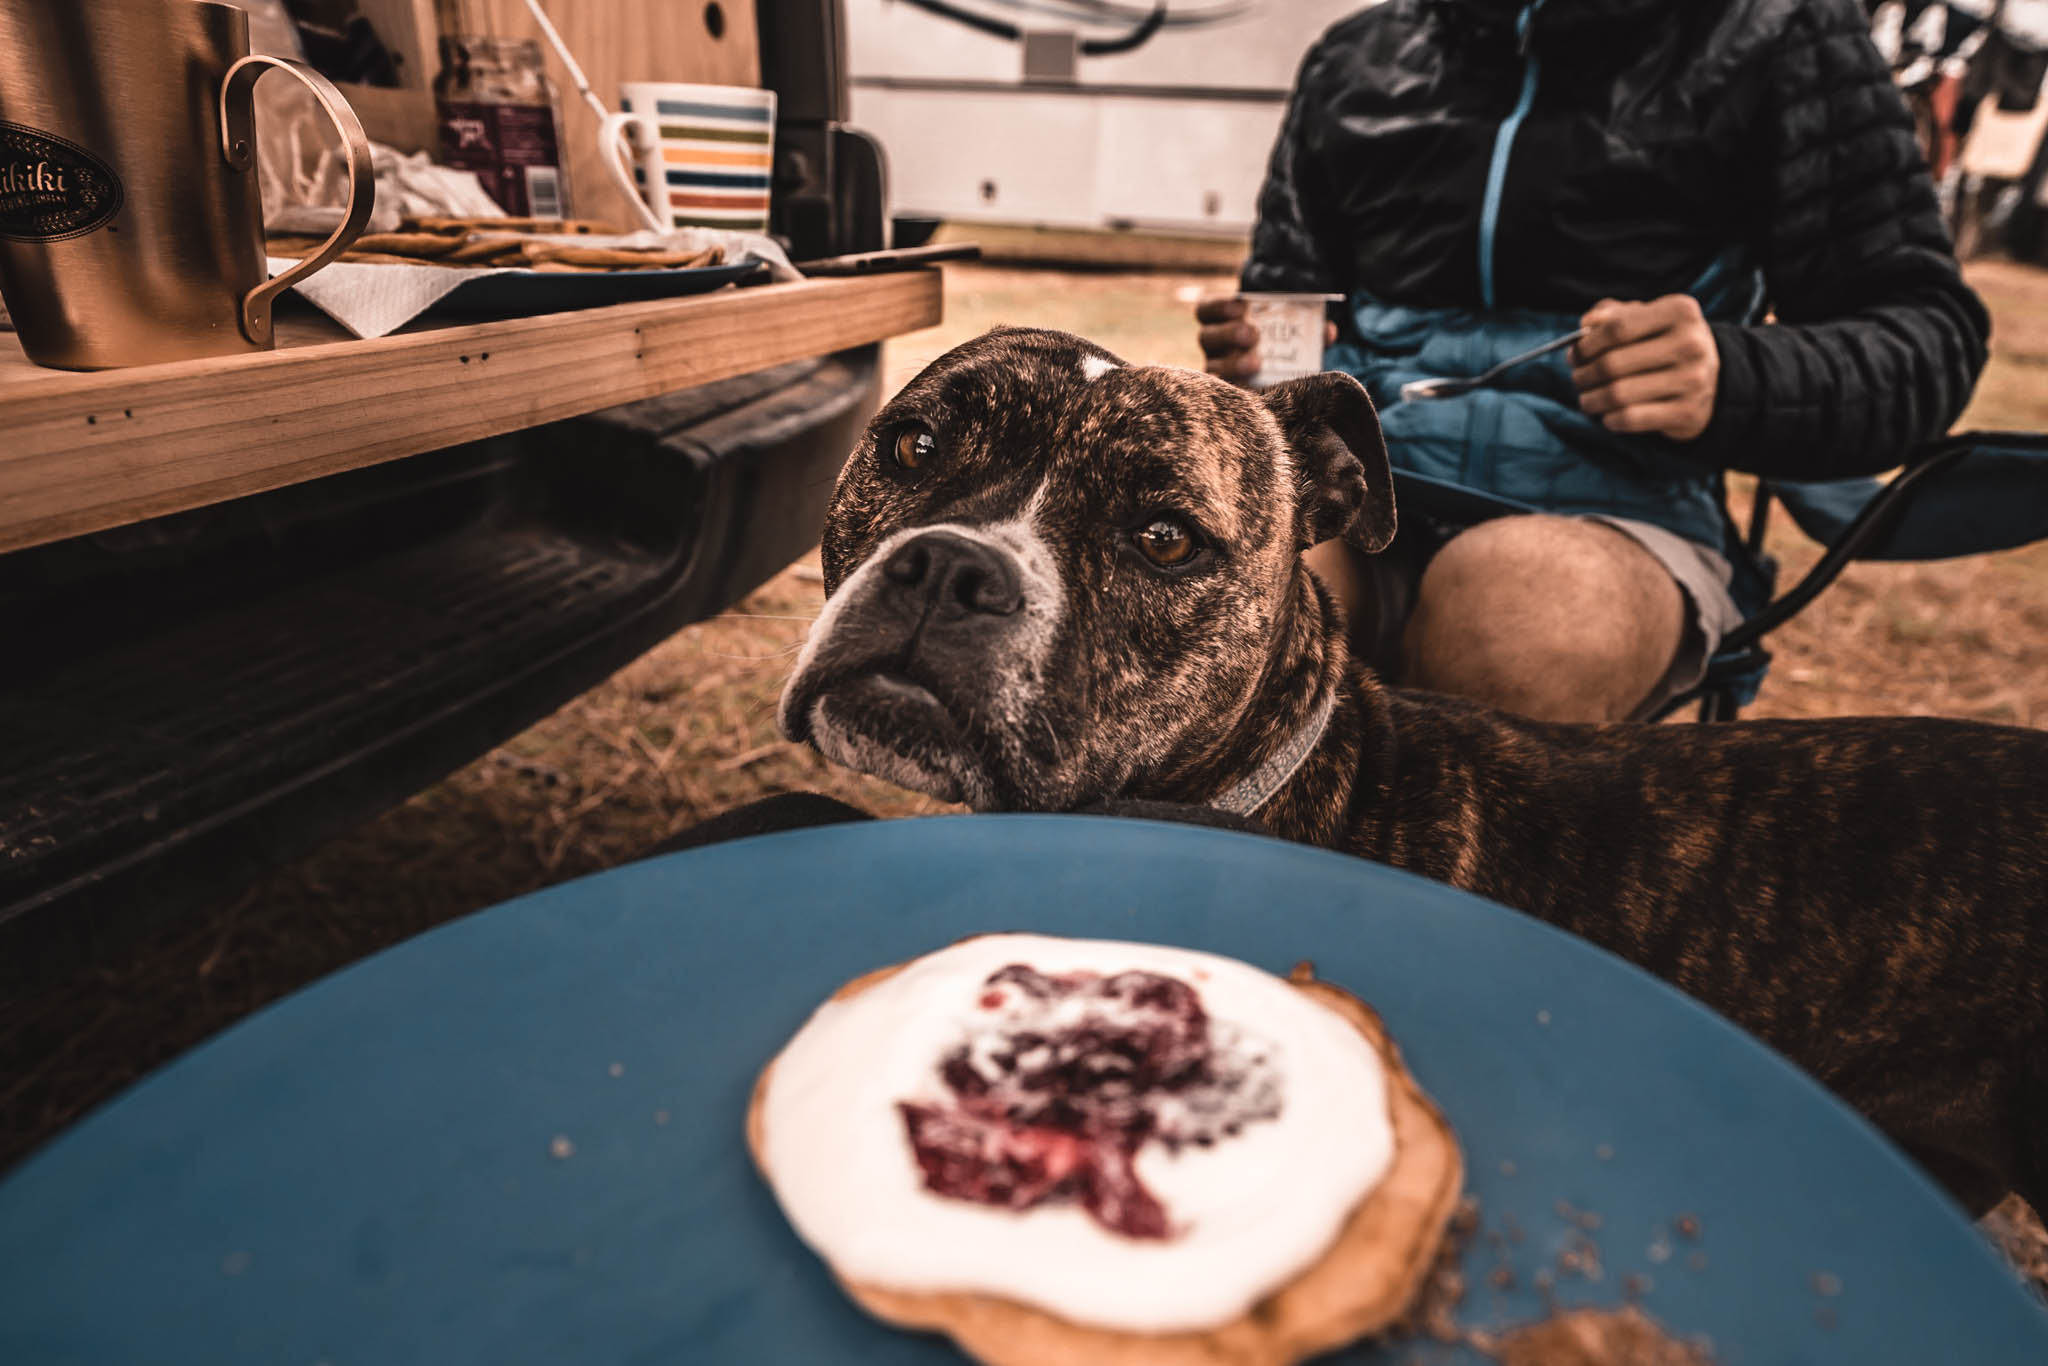 dog hungry camping pancake